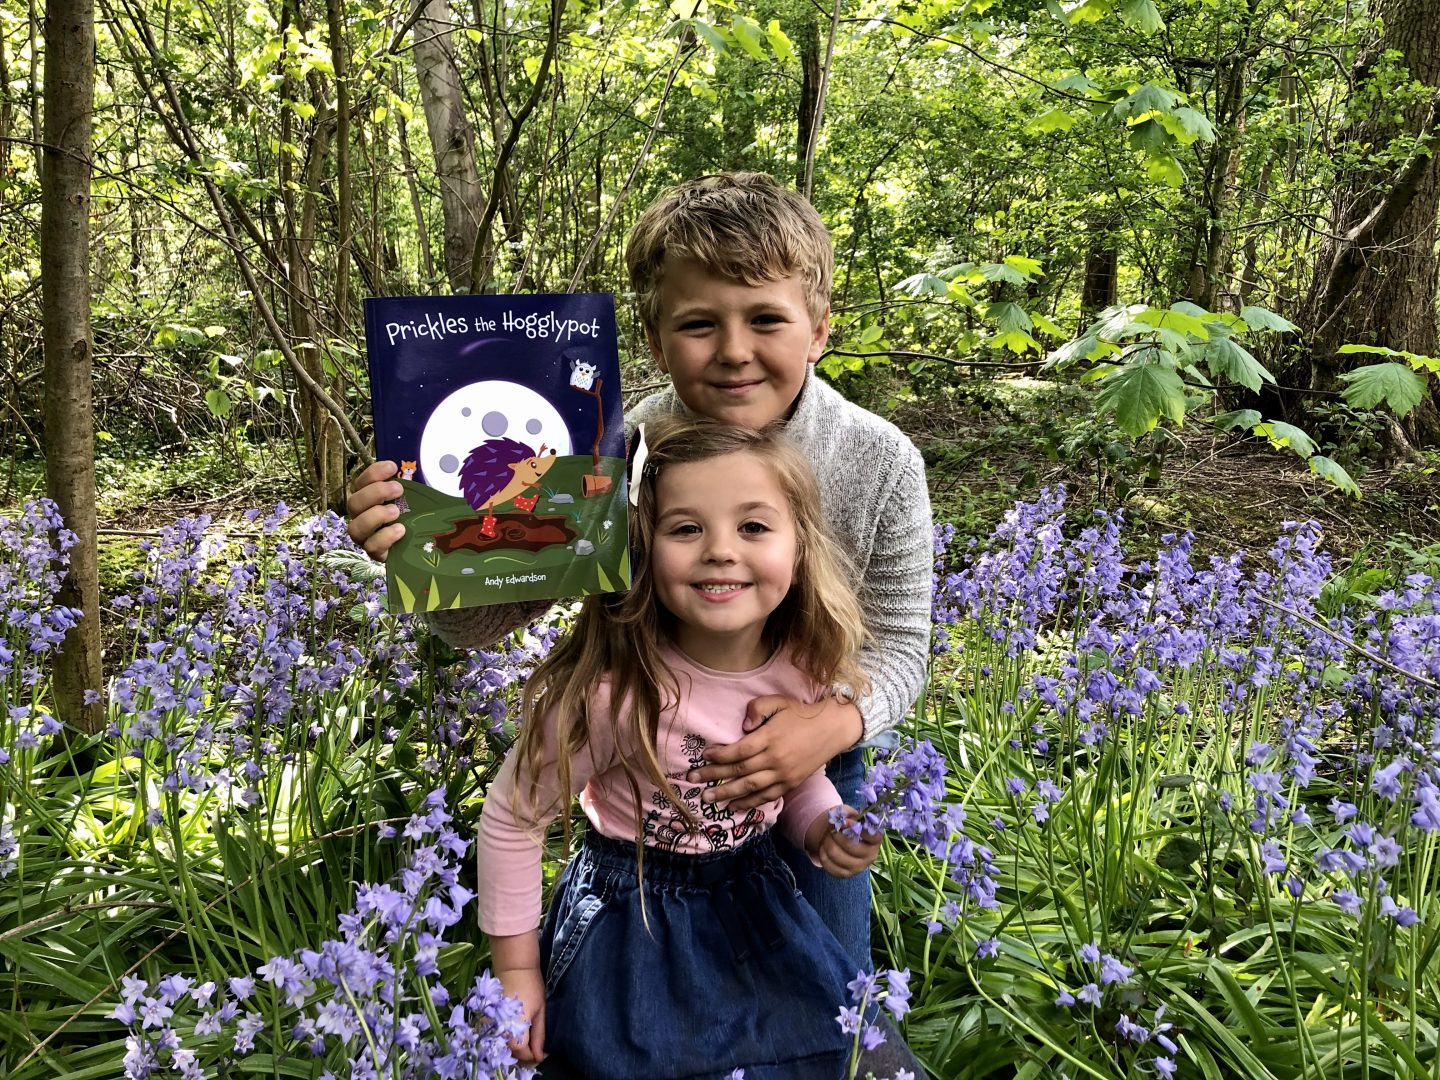 Harry holding a copy of Prickles the Hogglypot in the middle of a patch of bluebells